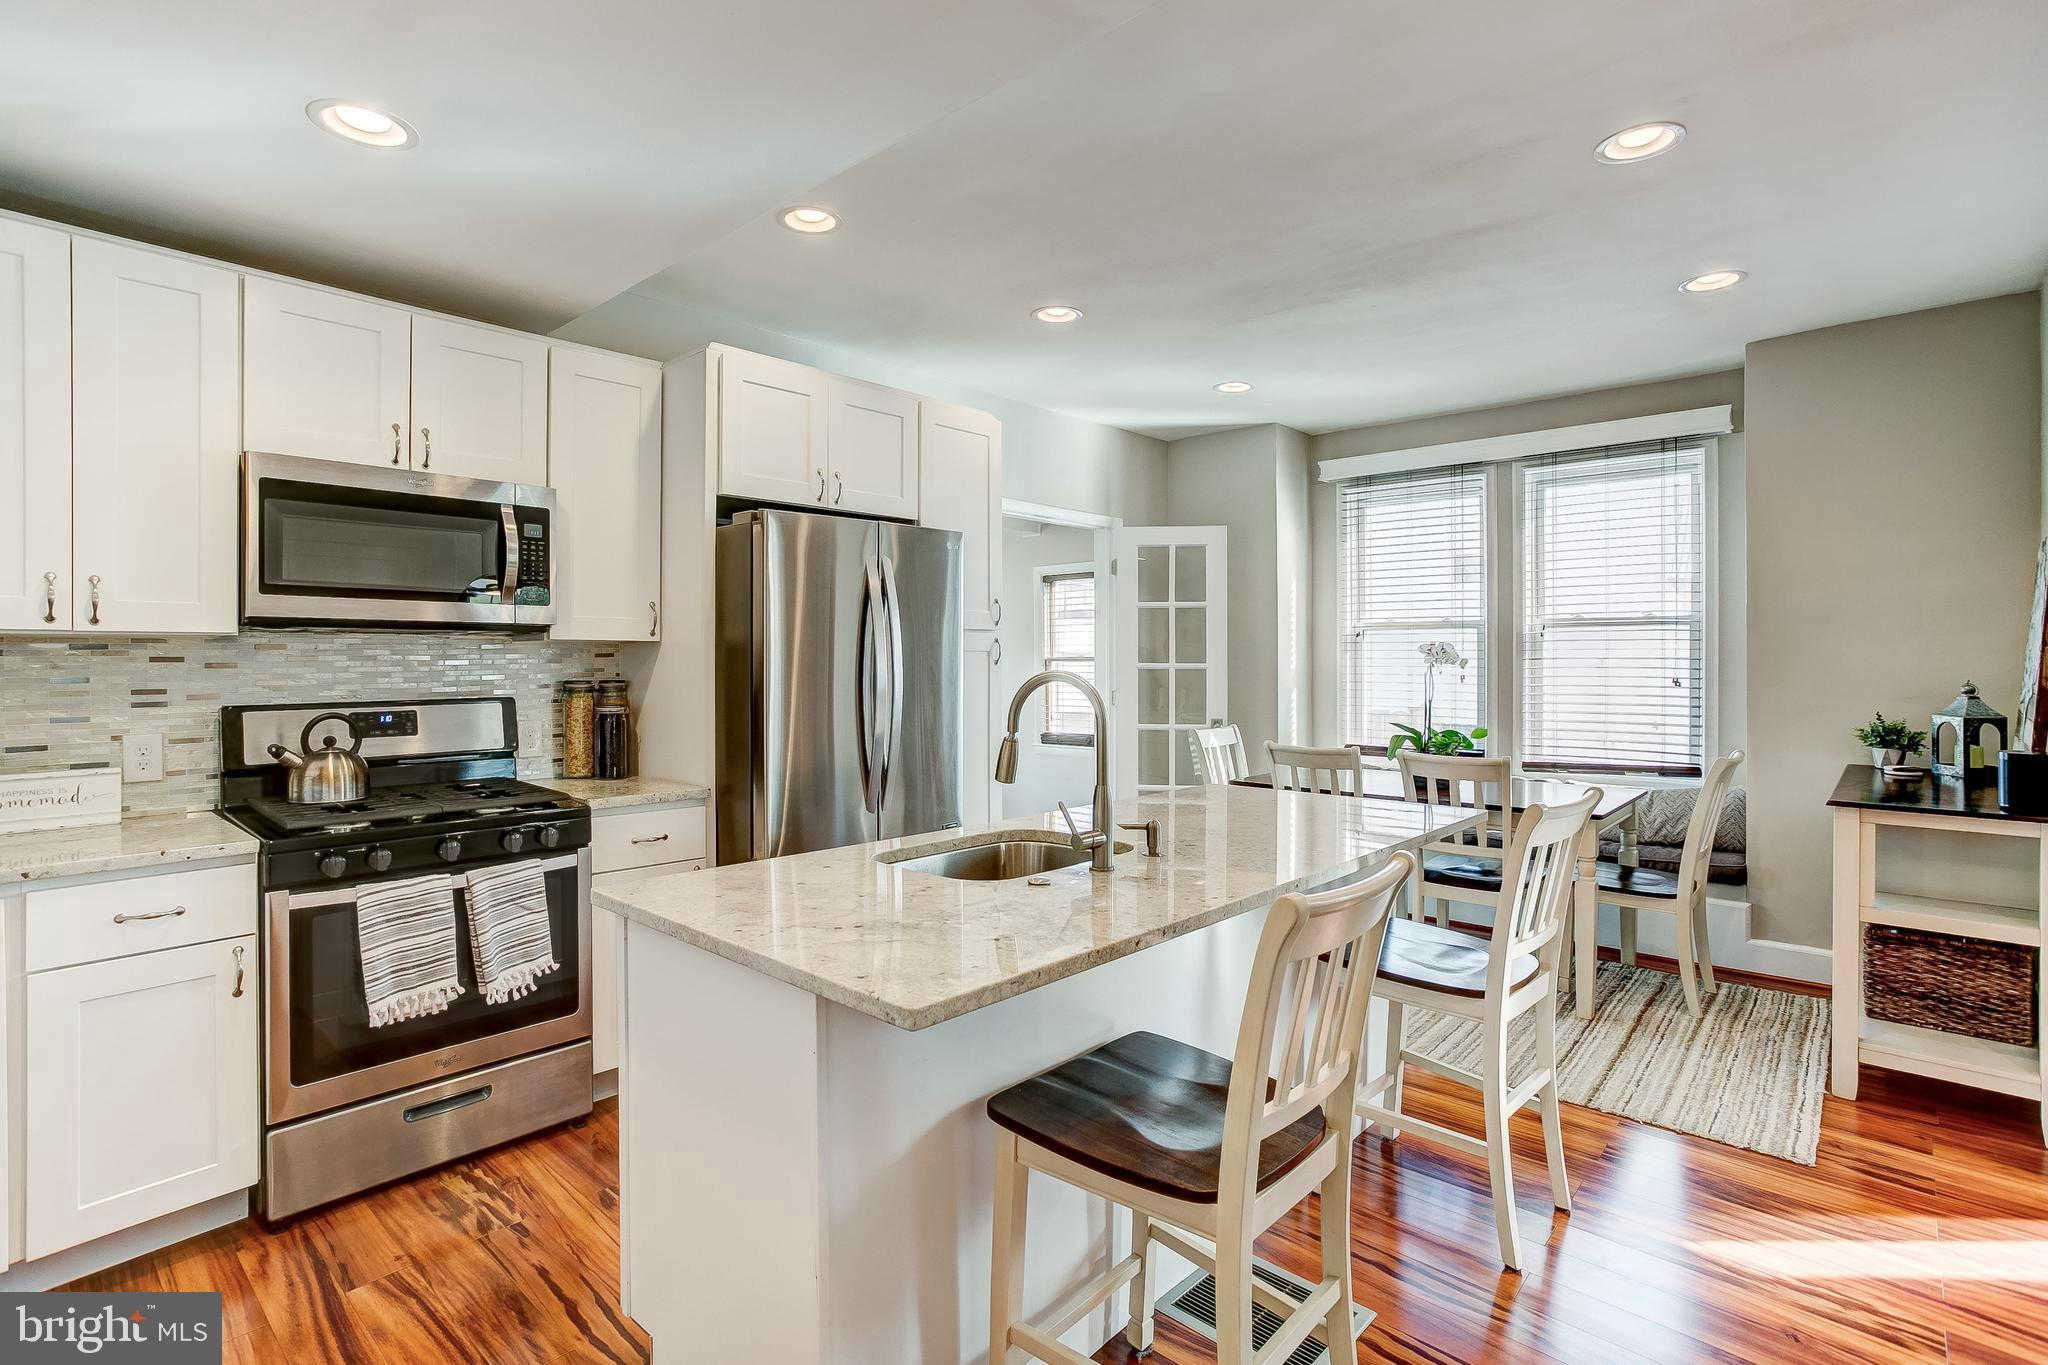 Video Tour  - 3812 Forrester Avenue, Baltimore, MD 21206